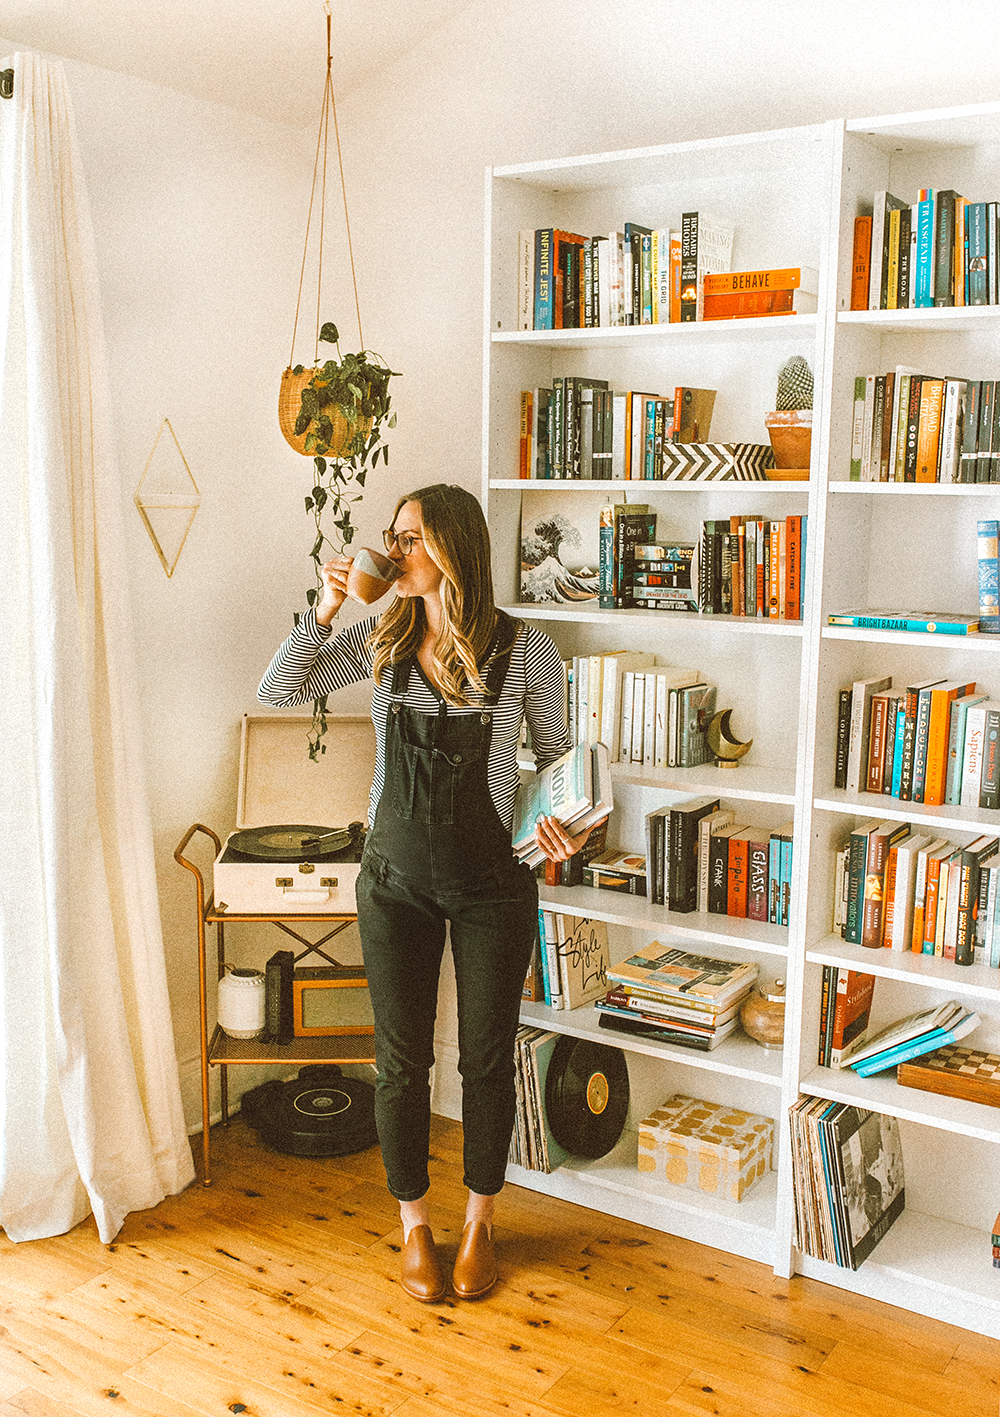 8a96dd7898e 3 Books To Inspire You In 2019 Livvyland Austin Fashion And